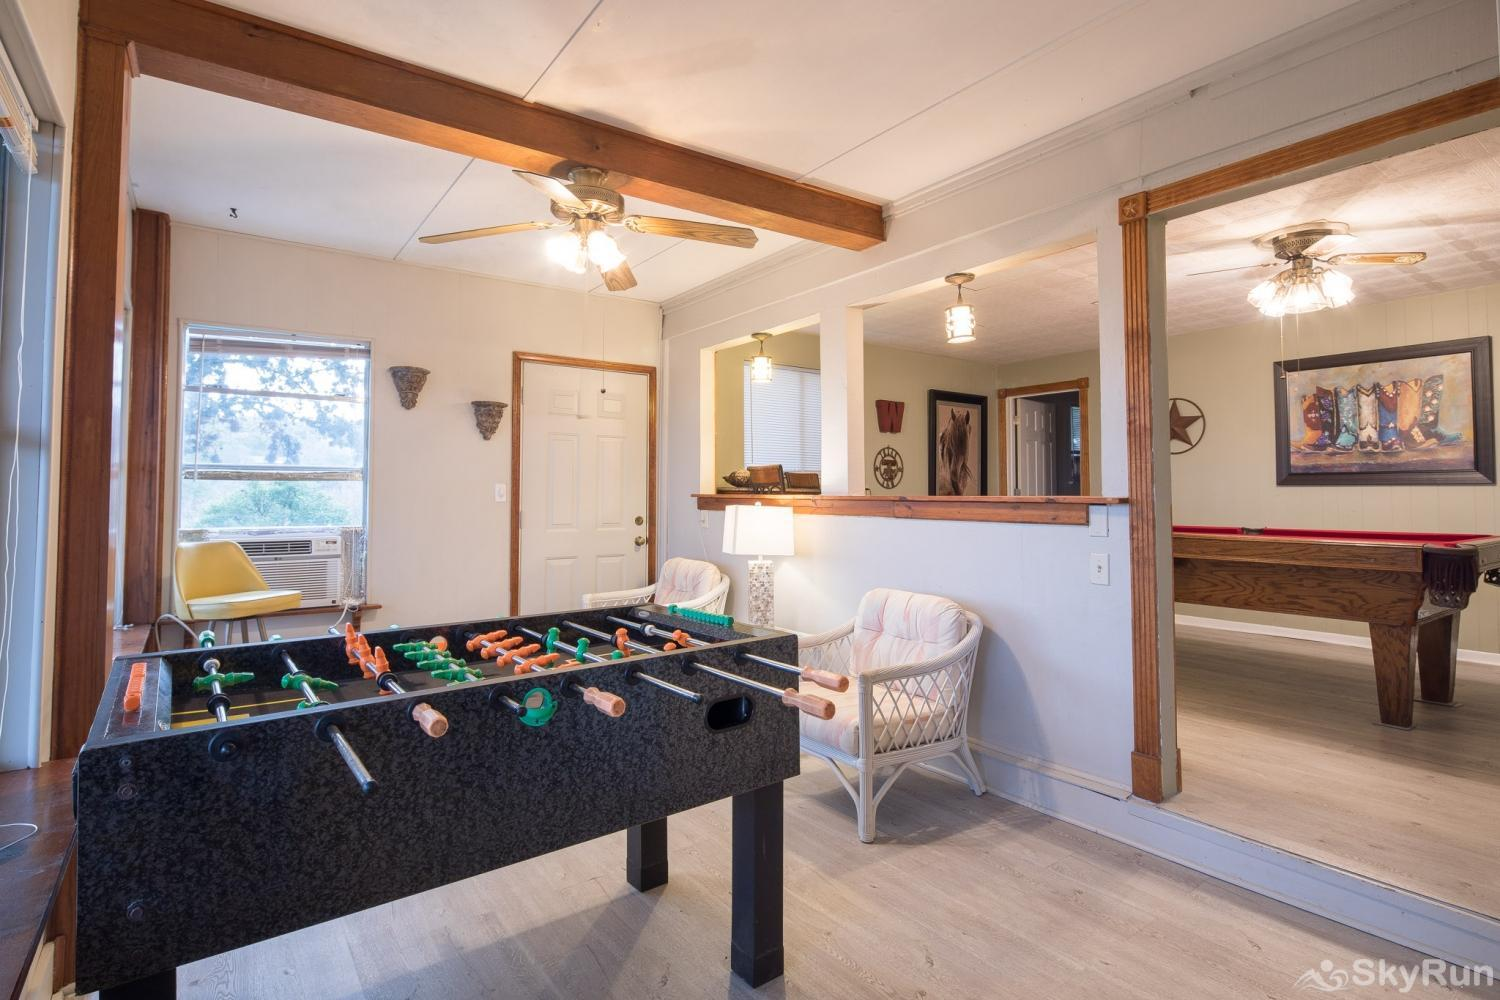 TEXAS ROSE LODGE Foosball table in downstairs game room